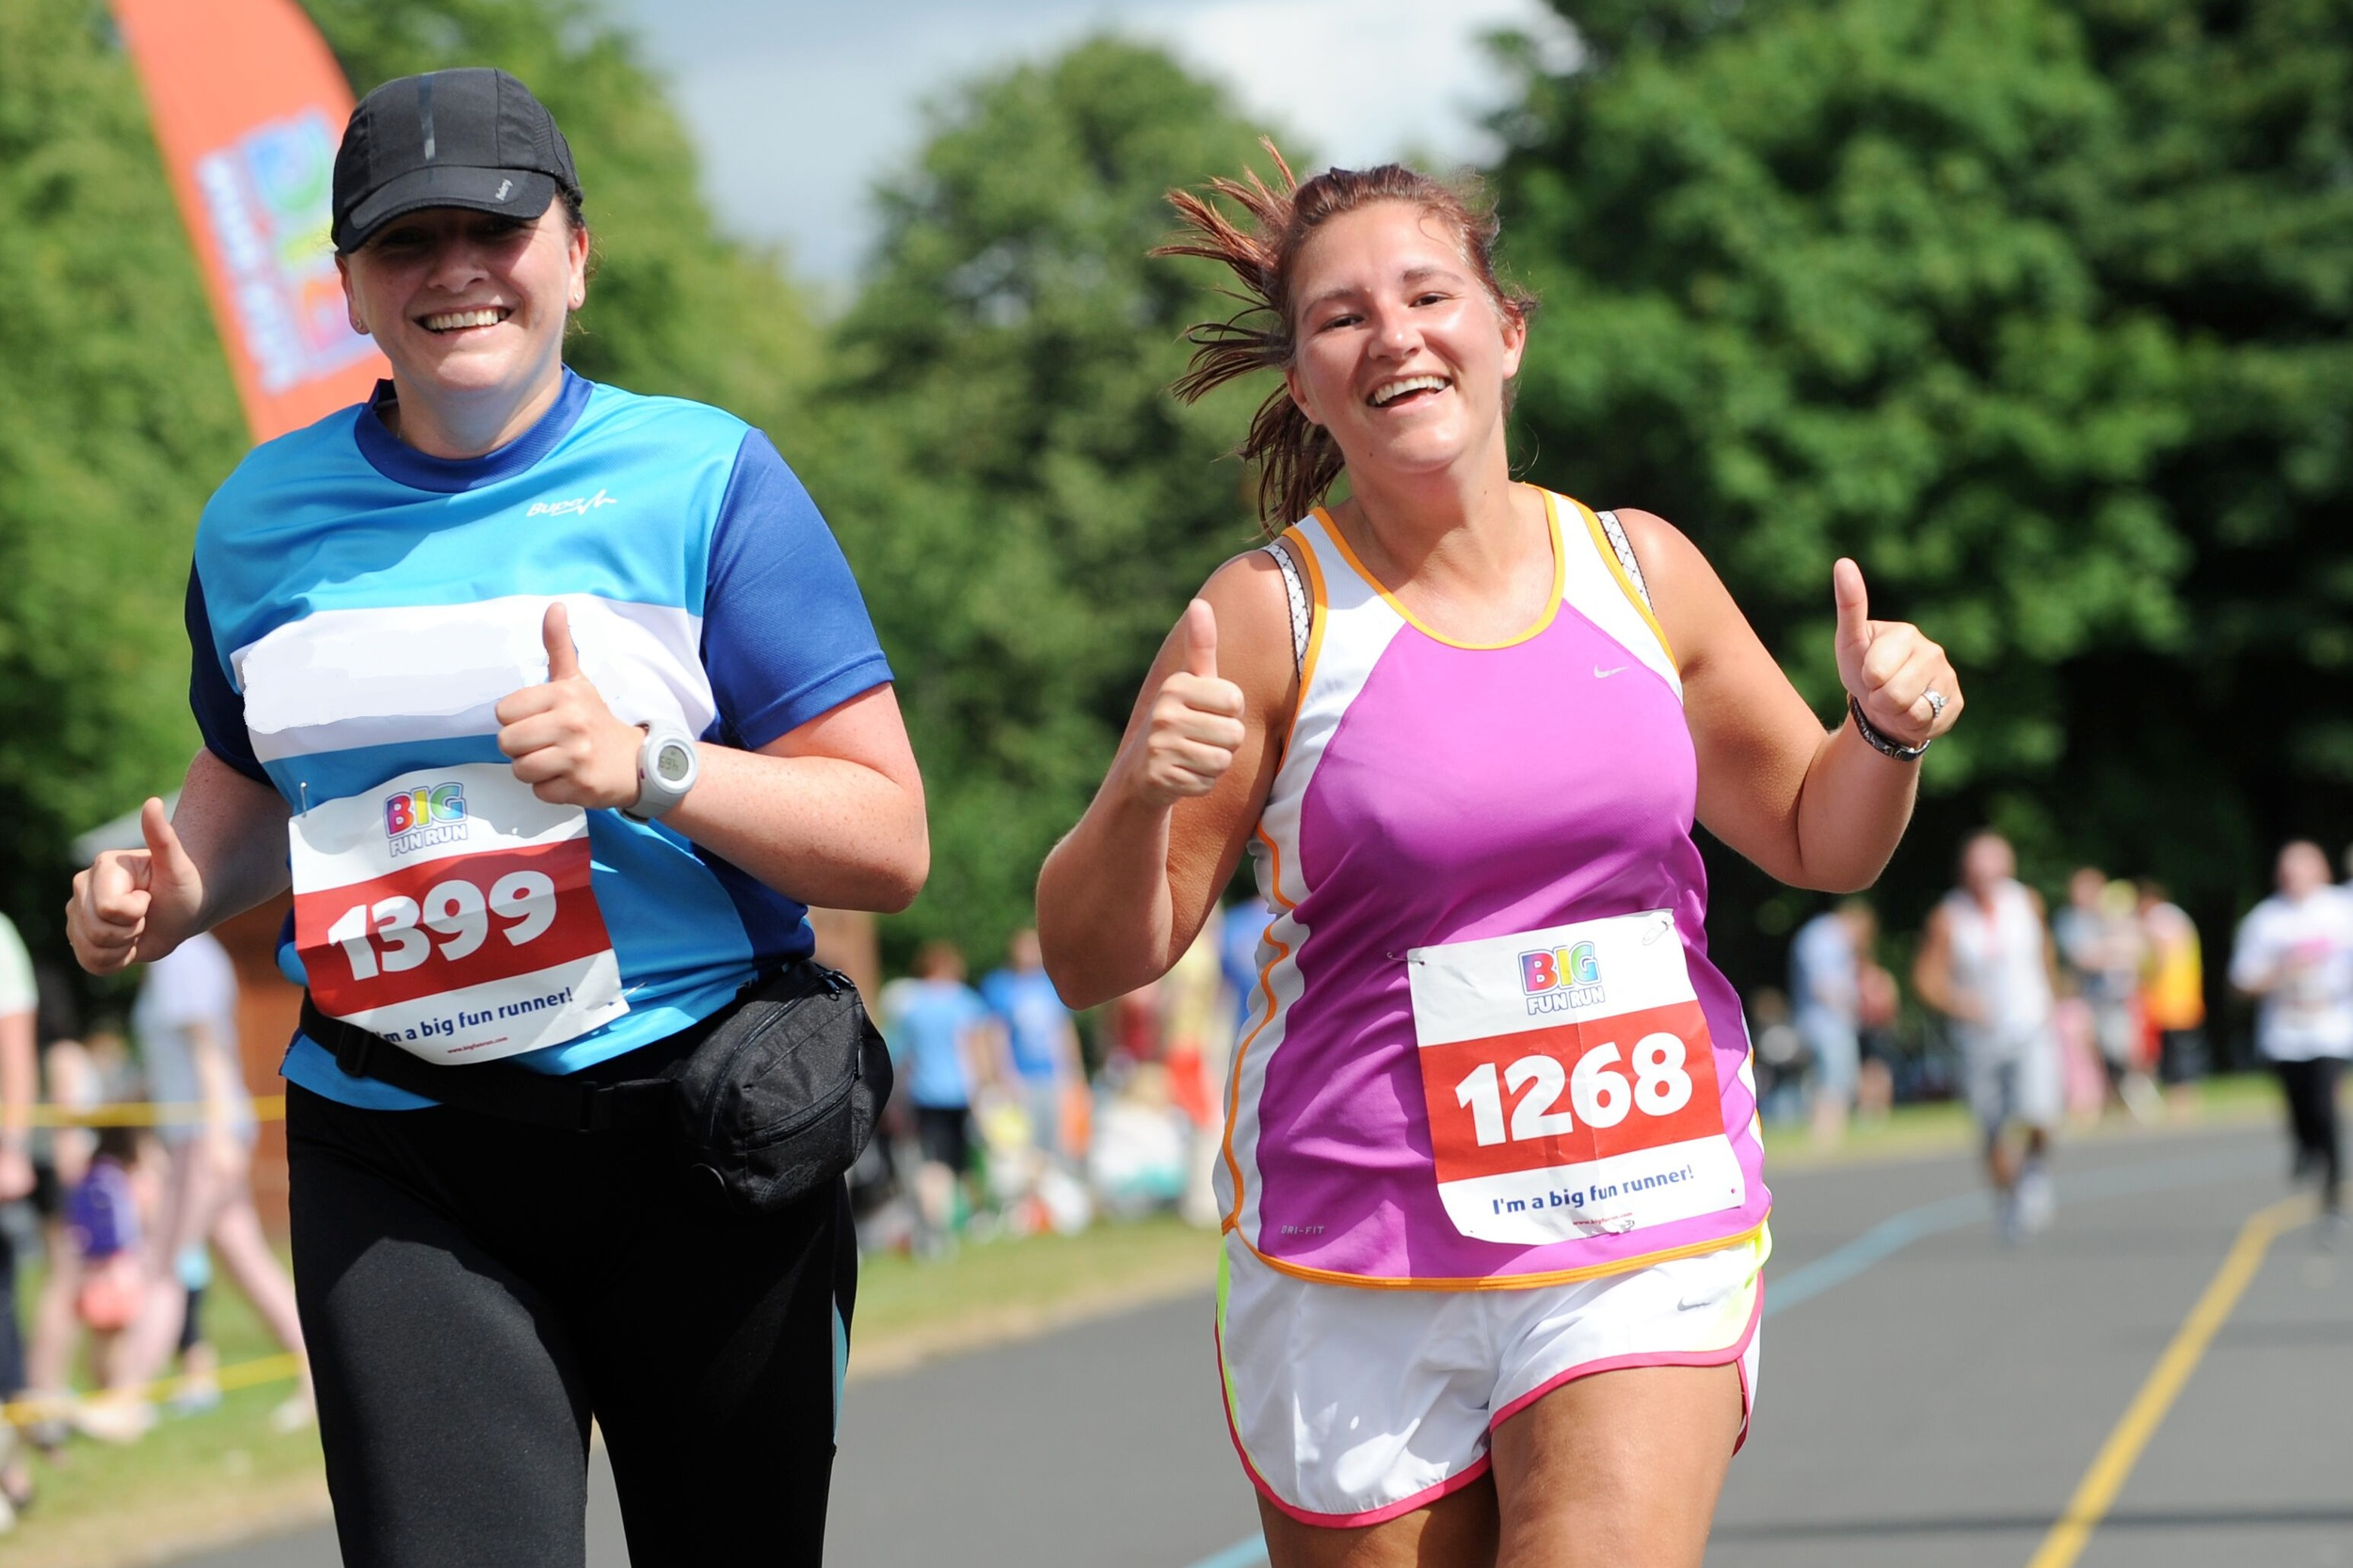 Two runners enjoy the Big Fun Run. Claim your free spot at the race - worth £15 - when running and fundraising at least £60 for Women and Children First.